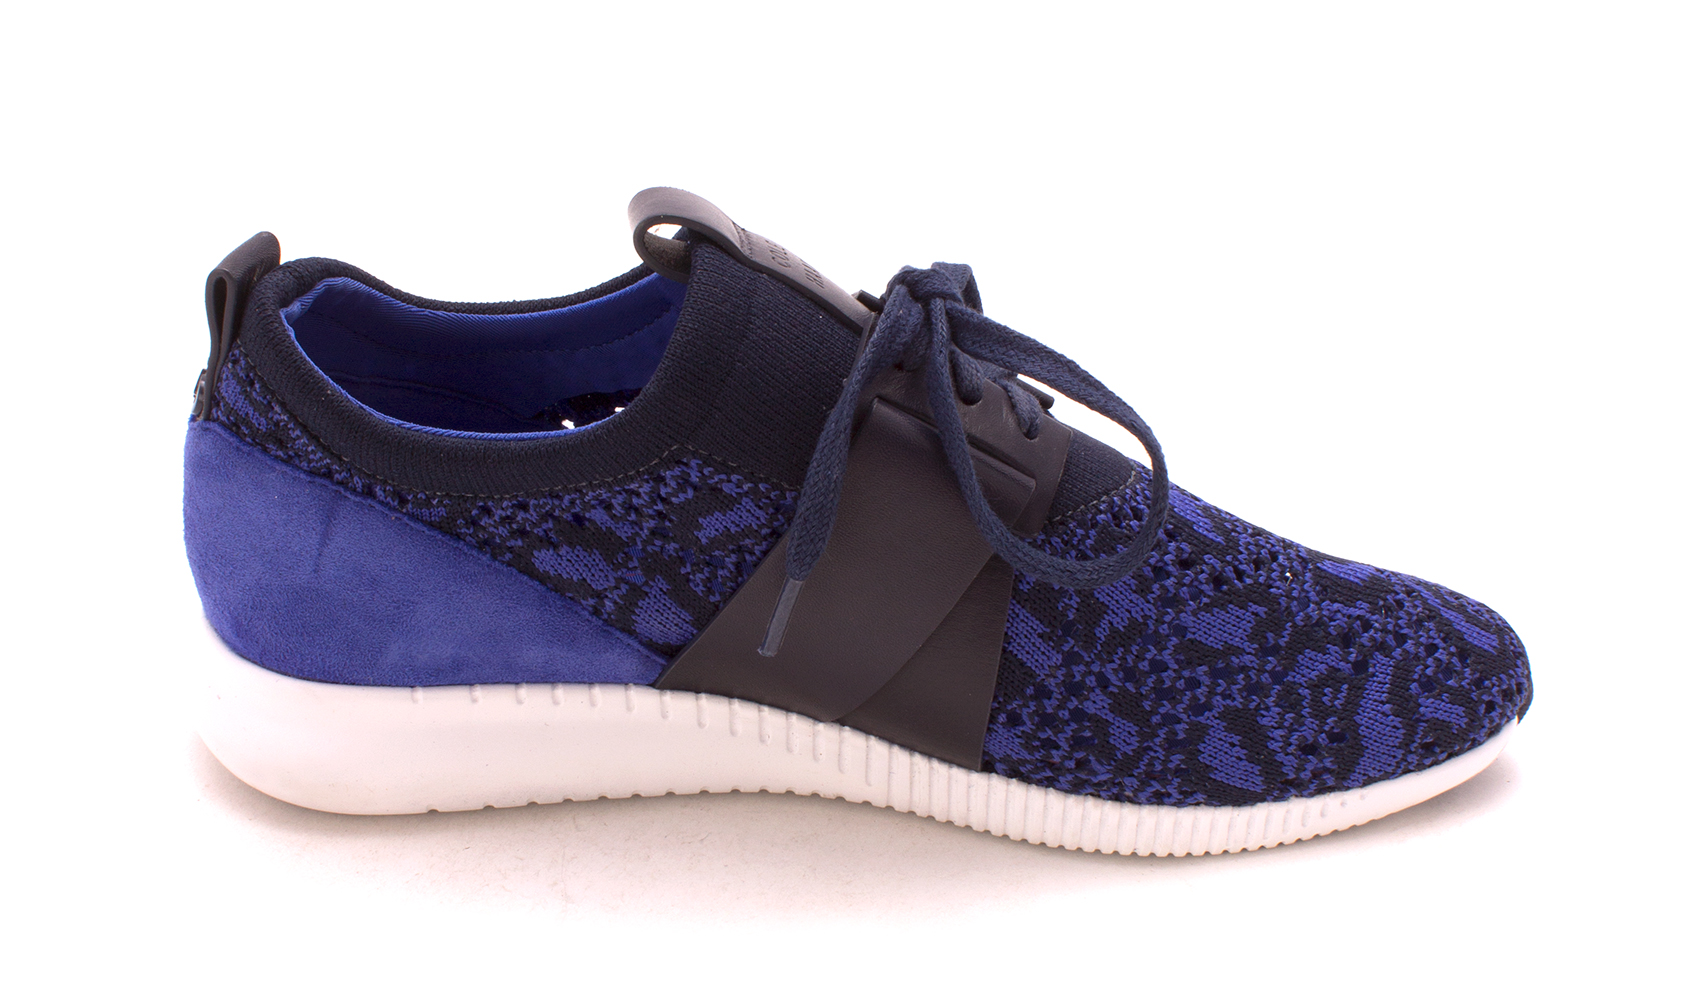 Cole Haan Womens Charlottesam Low Top Lace Up Fashion, Blue/Black, Size 6.0